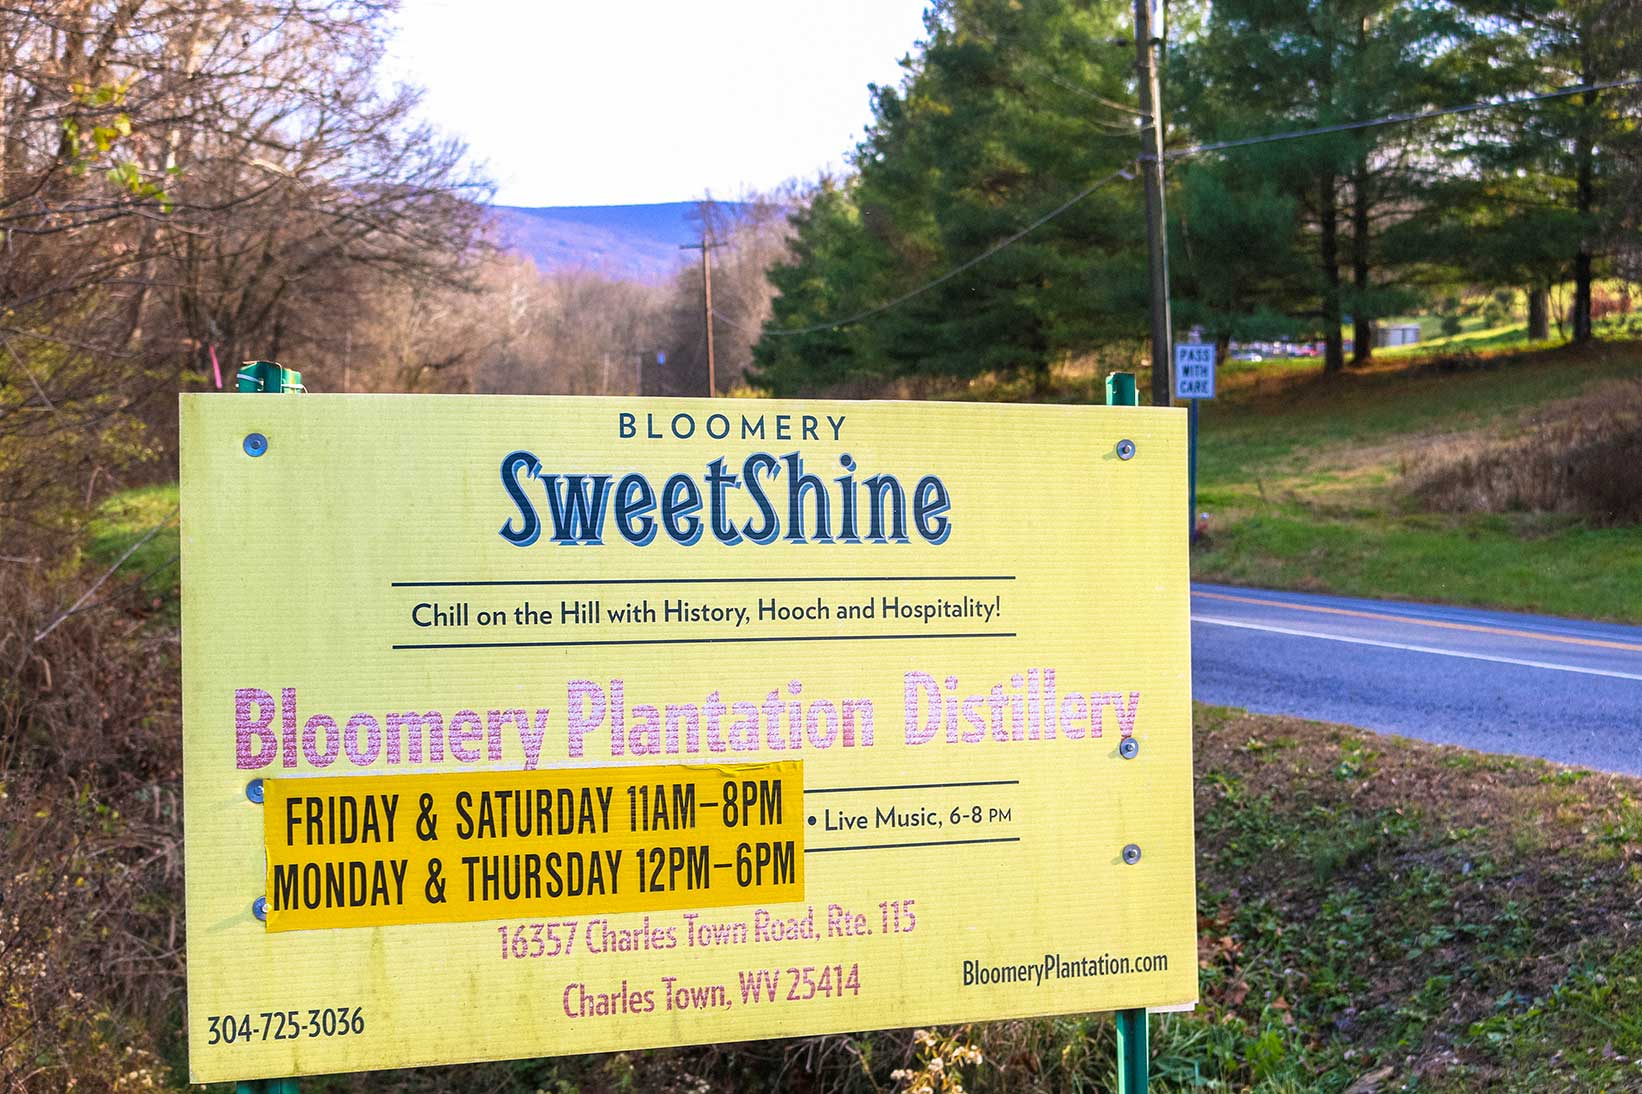 Bloomery Plantation Distillery in Charles Town, WV